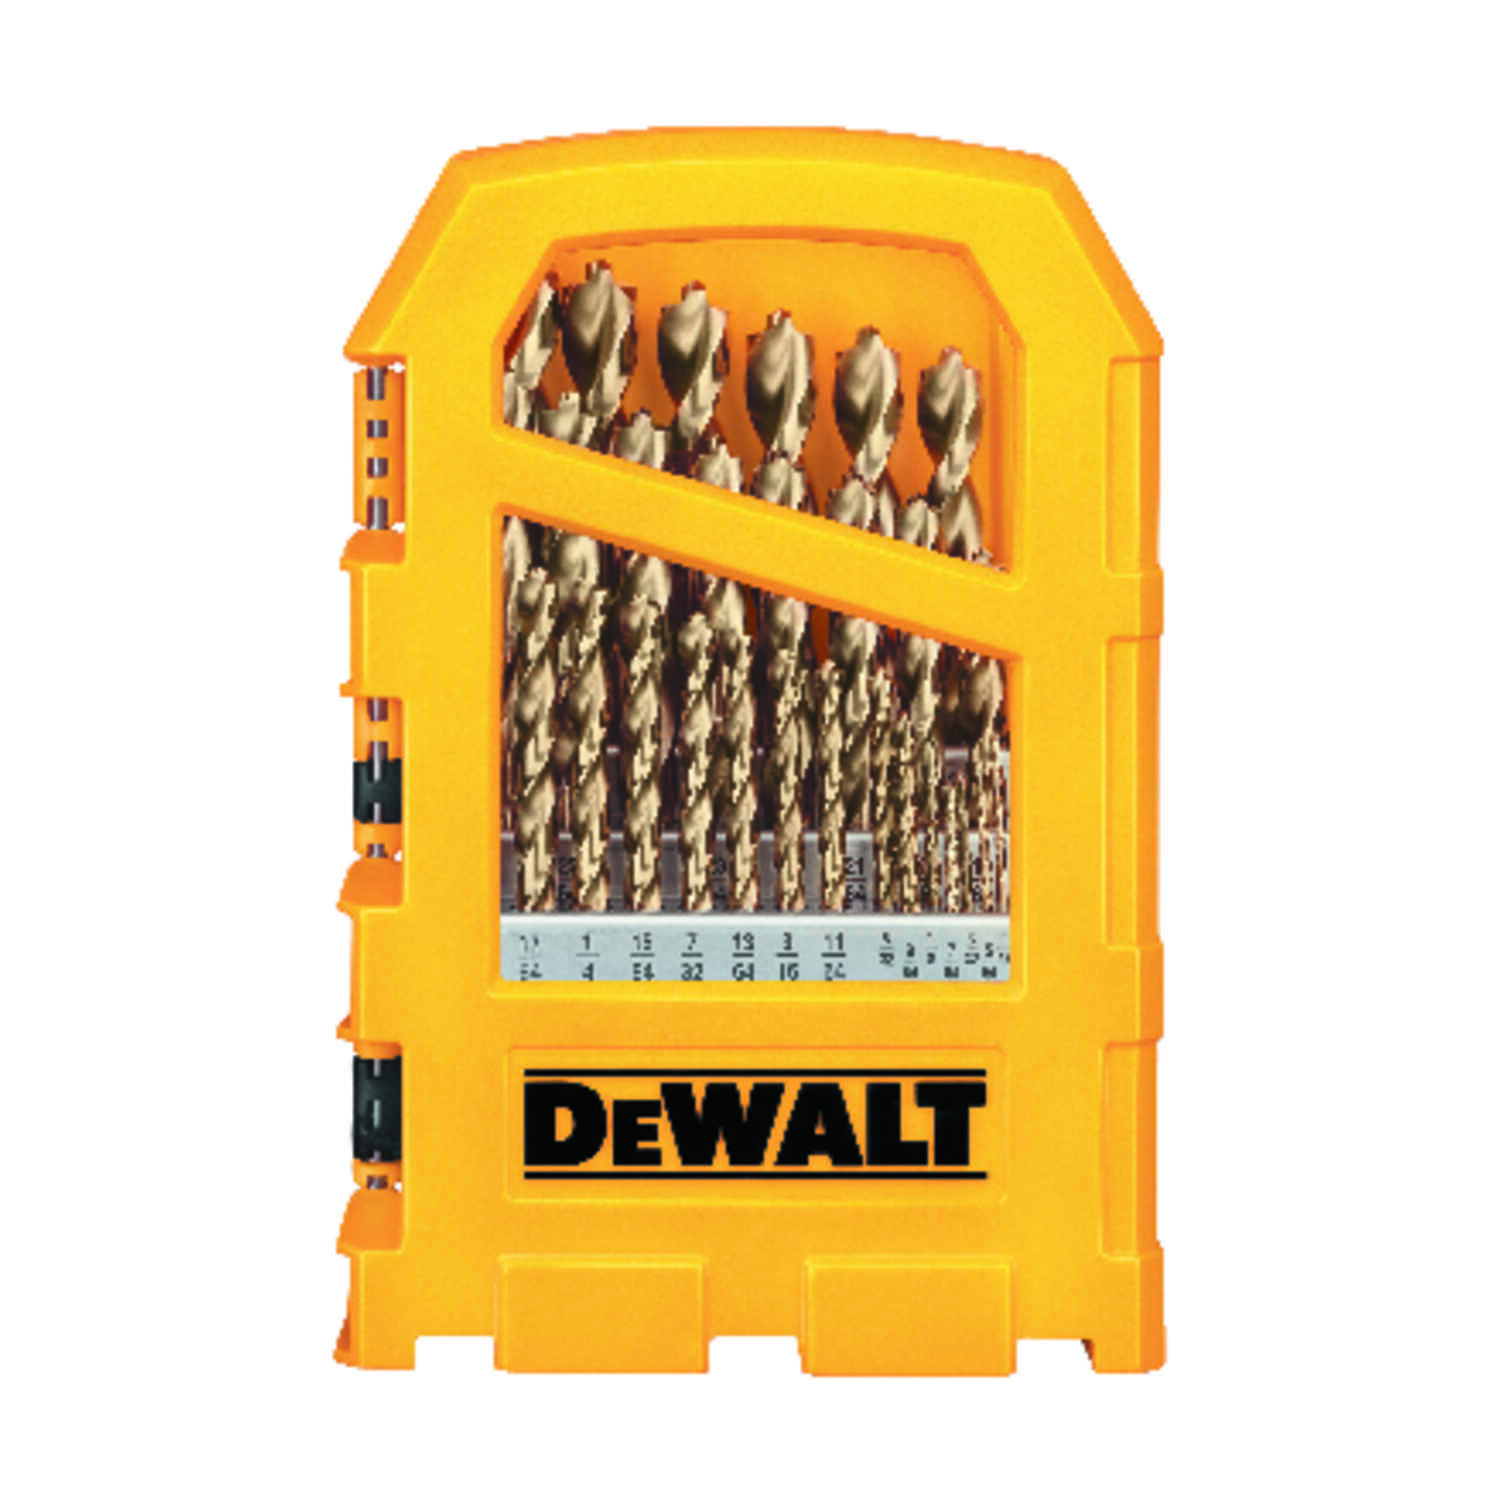 DeWalt  Pilot Point  High Speed Steel  Drill Bit Set  Straight Shank  29 pc.